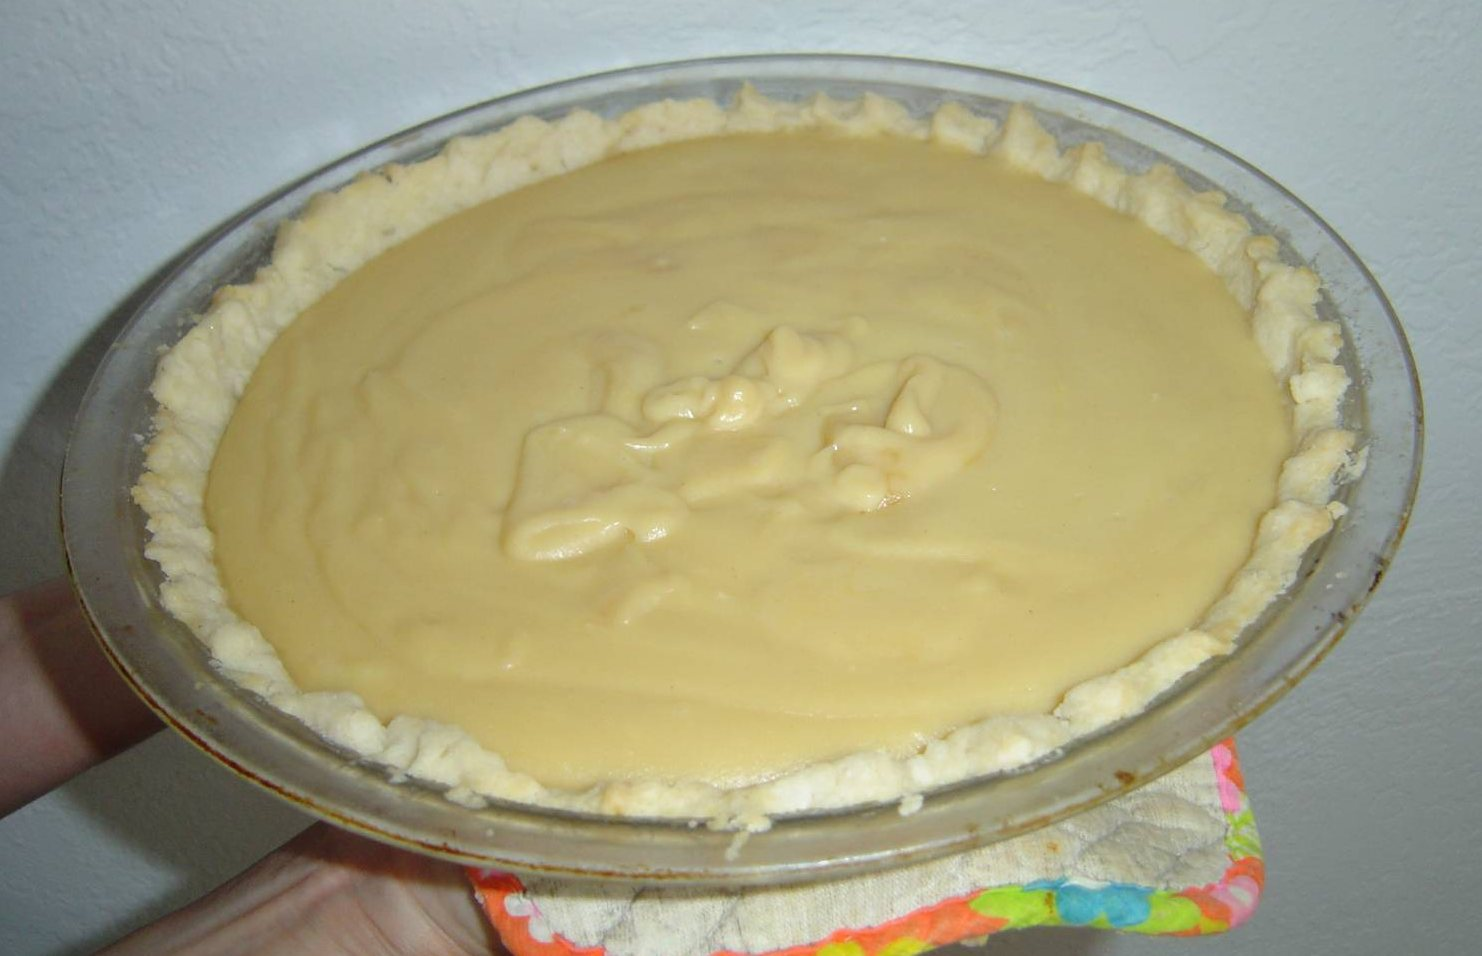 without-meringue-topping-on-peanut-butter-pie.jpeg